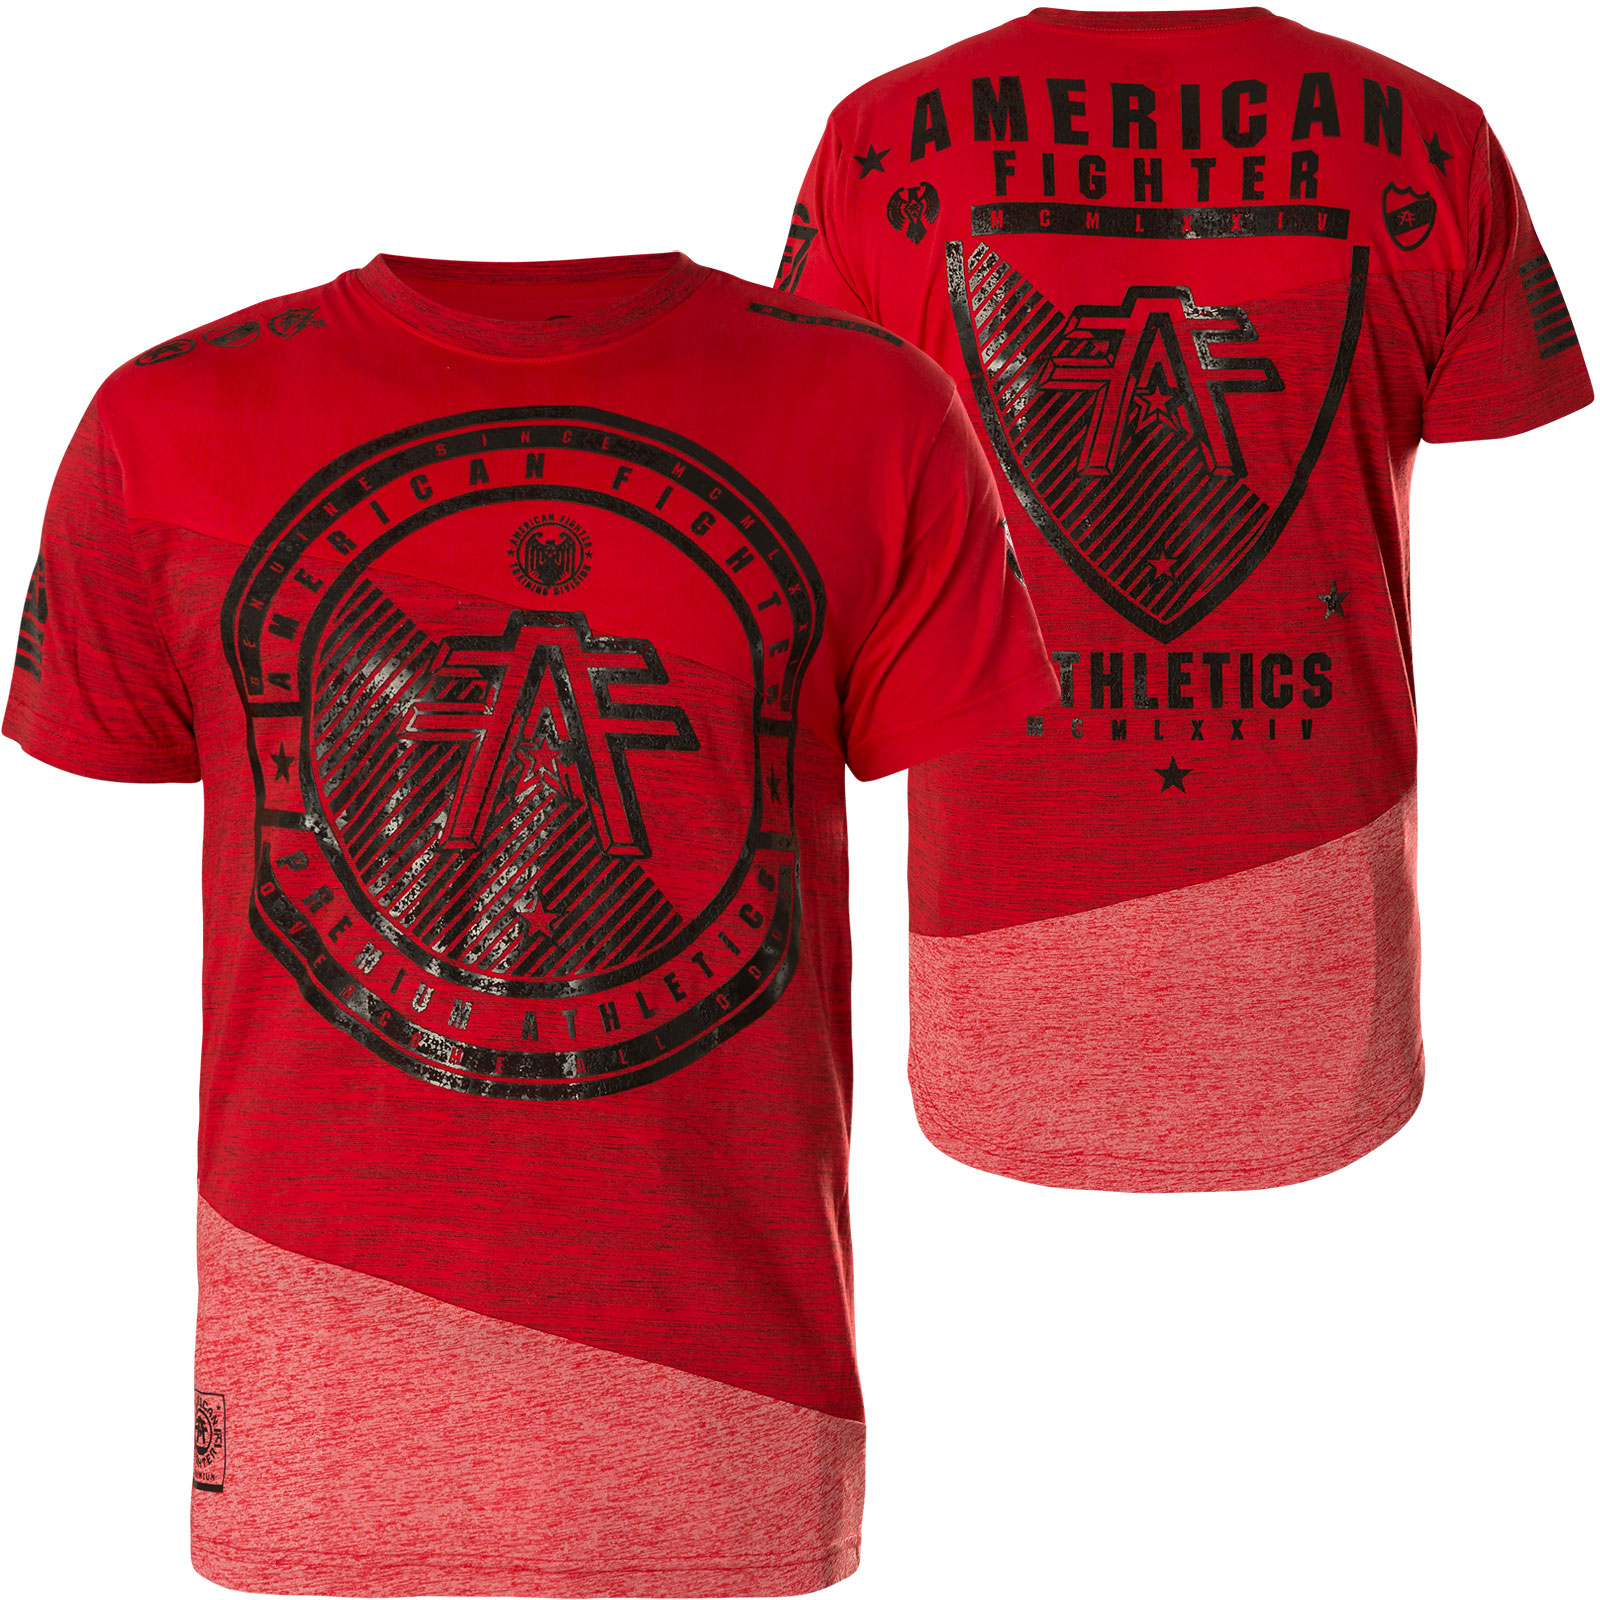 American Fighter by Affliction T.